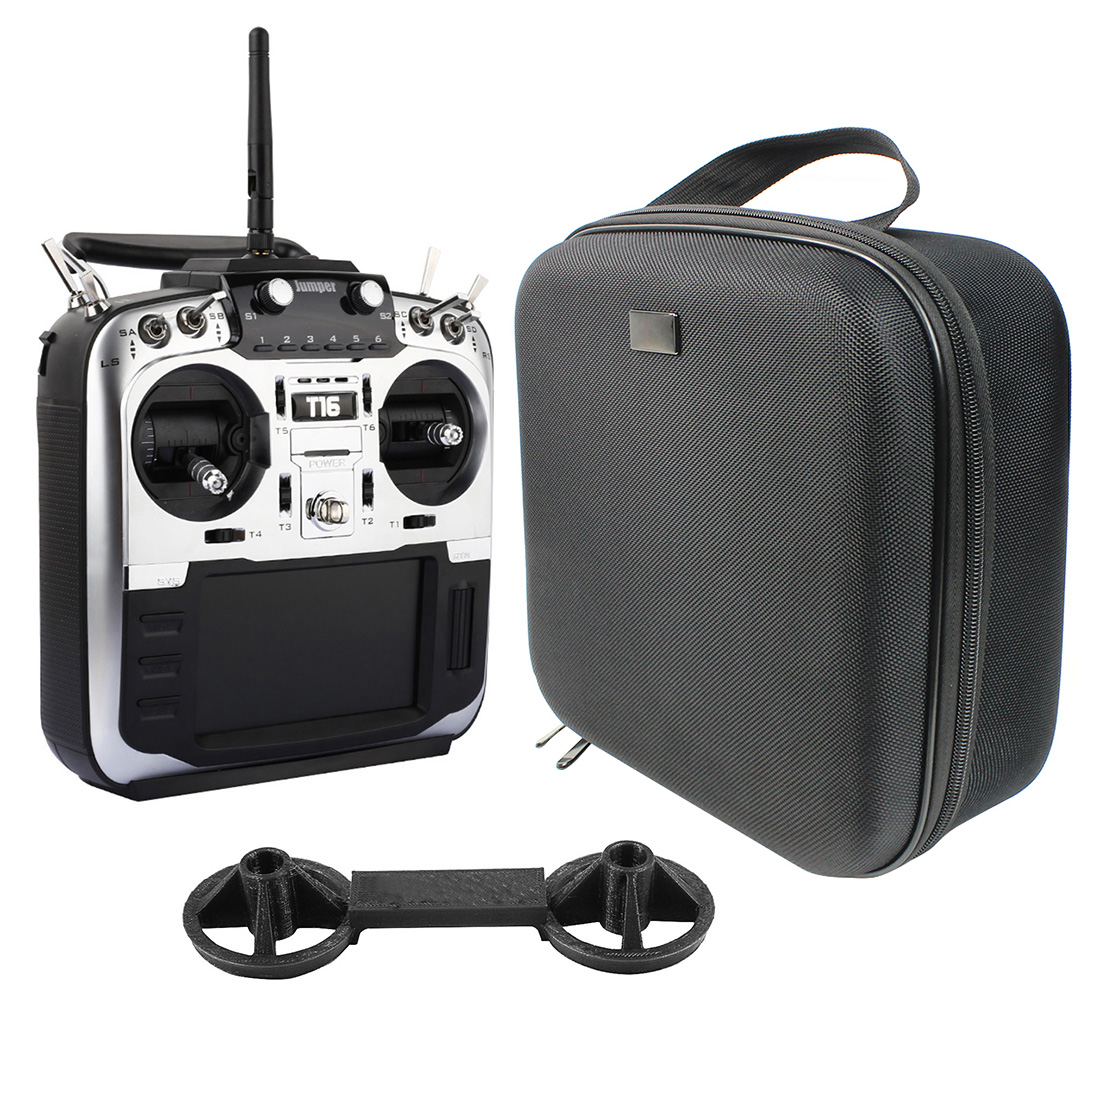 Jumper T16 Pro Hall Gimbal Open Source Built-in Module Multi-protocol Radio Transmitter 2.4G 16CH 4.3